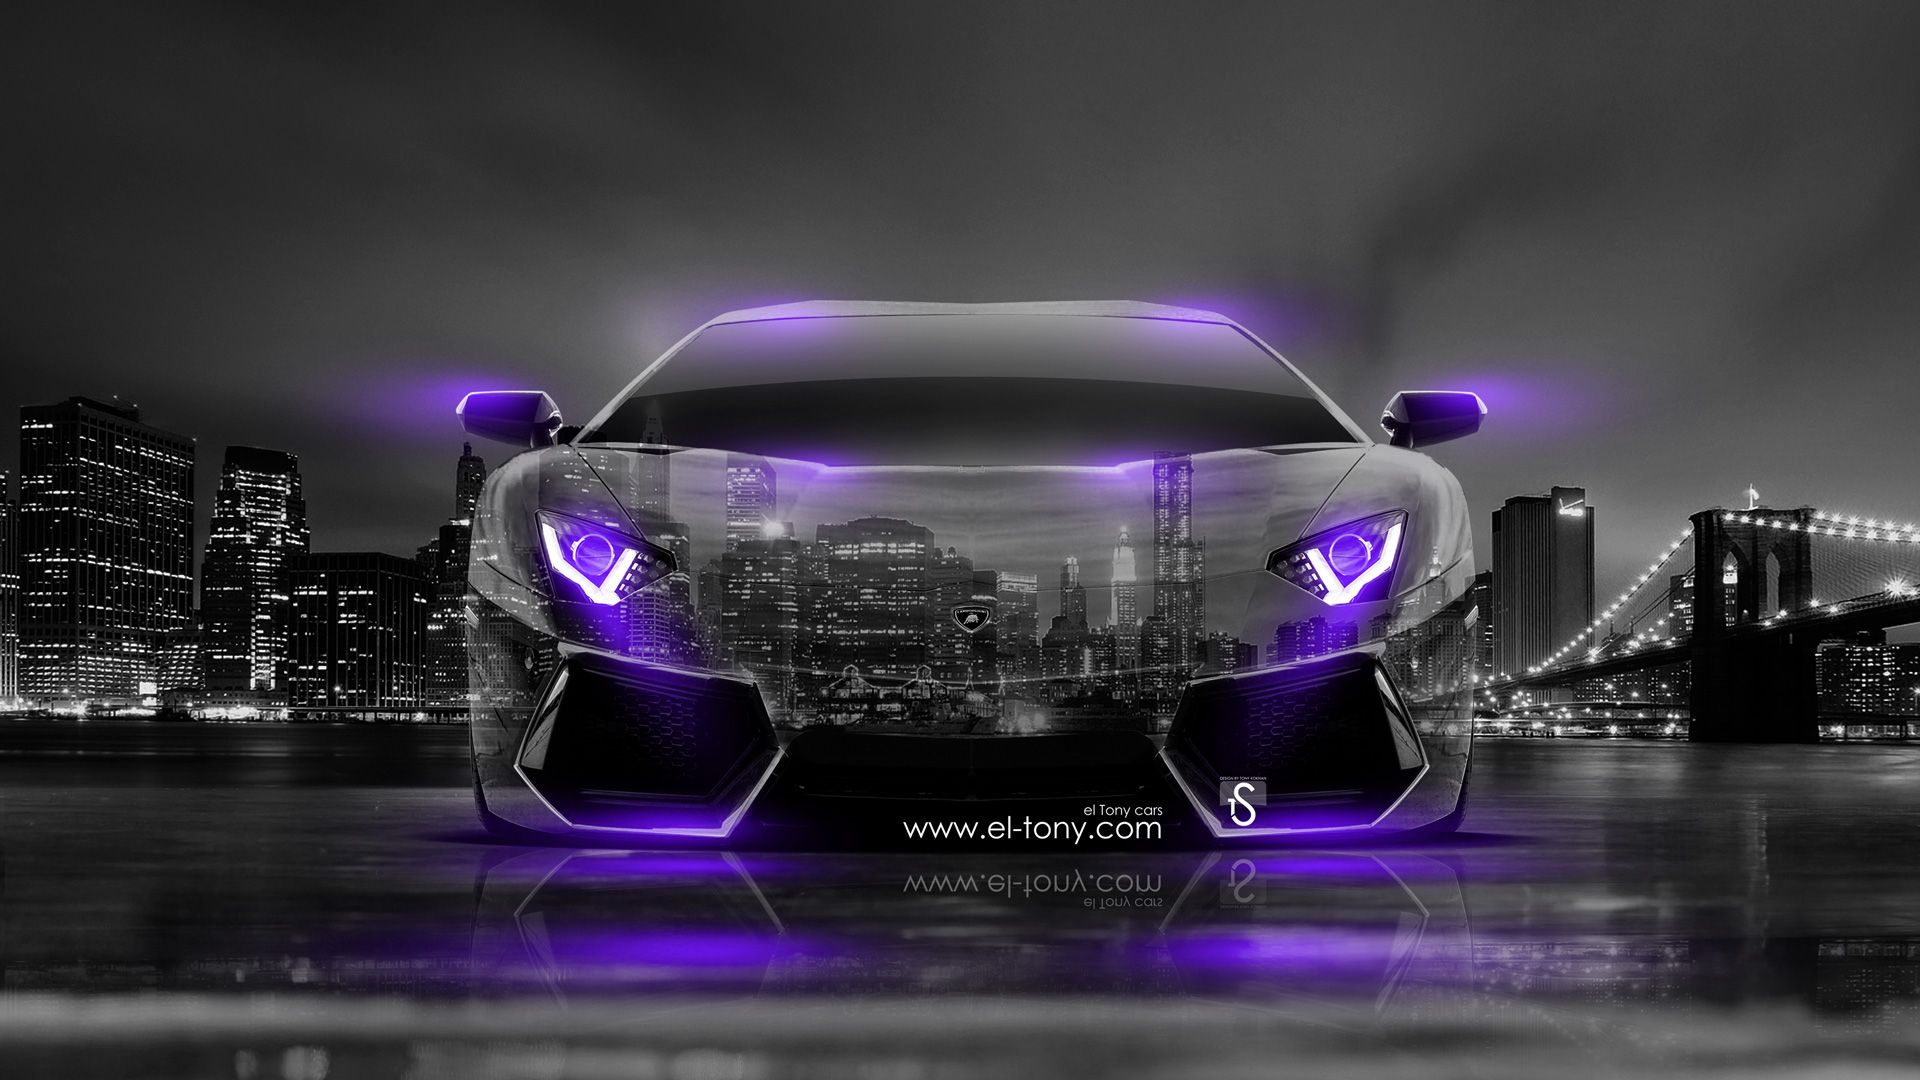 Black Lamborghini With Neon Blue Lights | Lamborghini Aventador Front  Crystal City Car 2014 Violet Neon Design ... | Cars | Pinterest | City Car,  ...